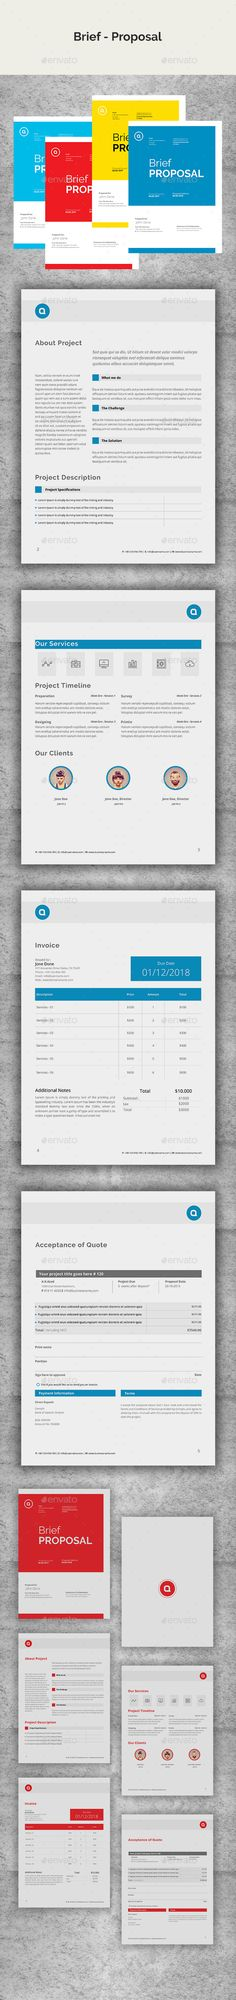 Great Invoice Design Template | Design Biz | Pinterest | Invoice